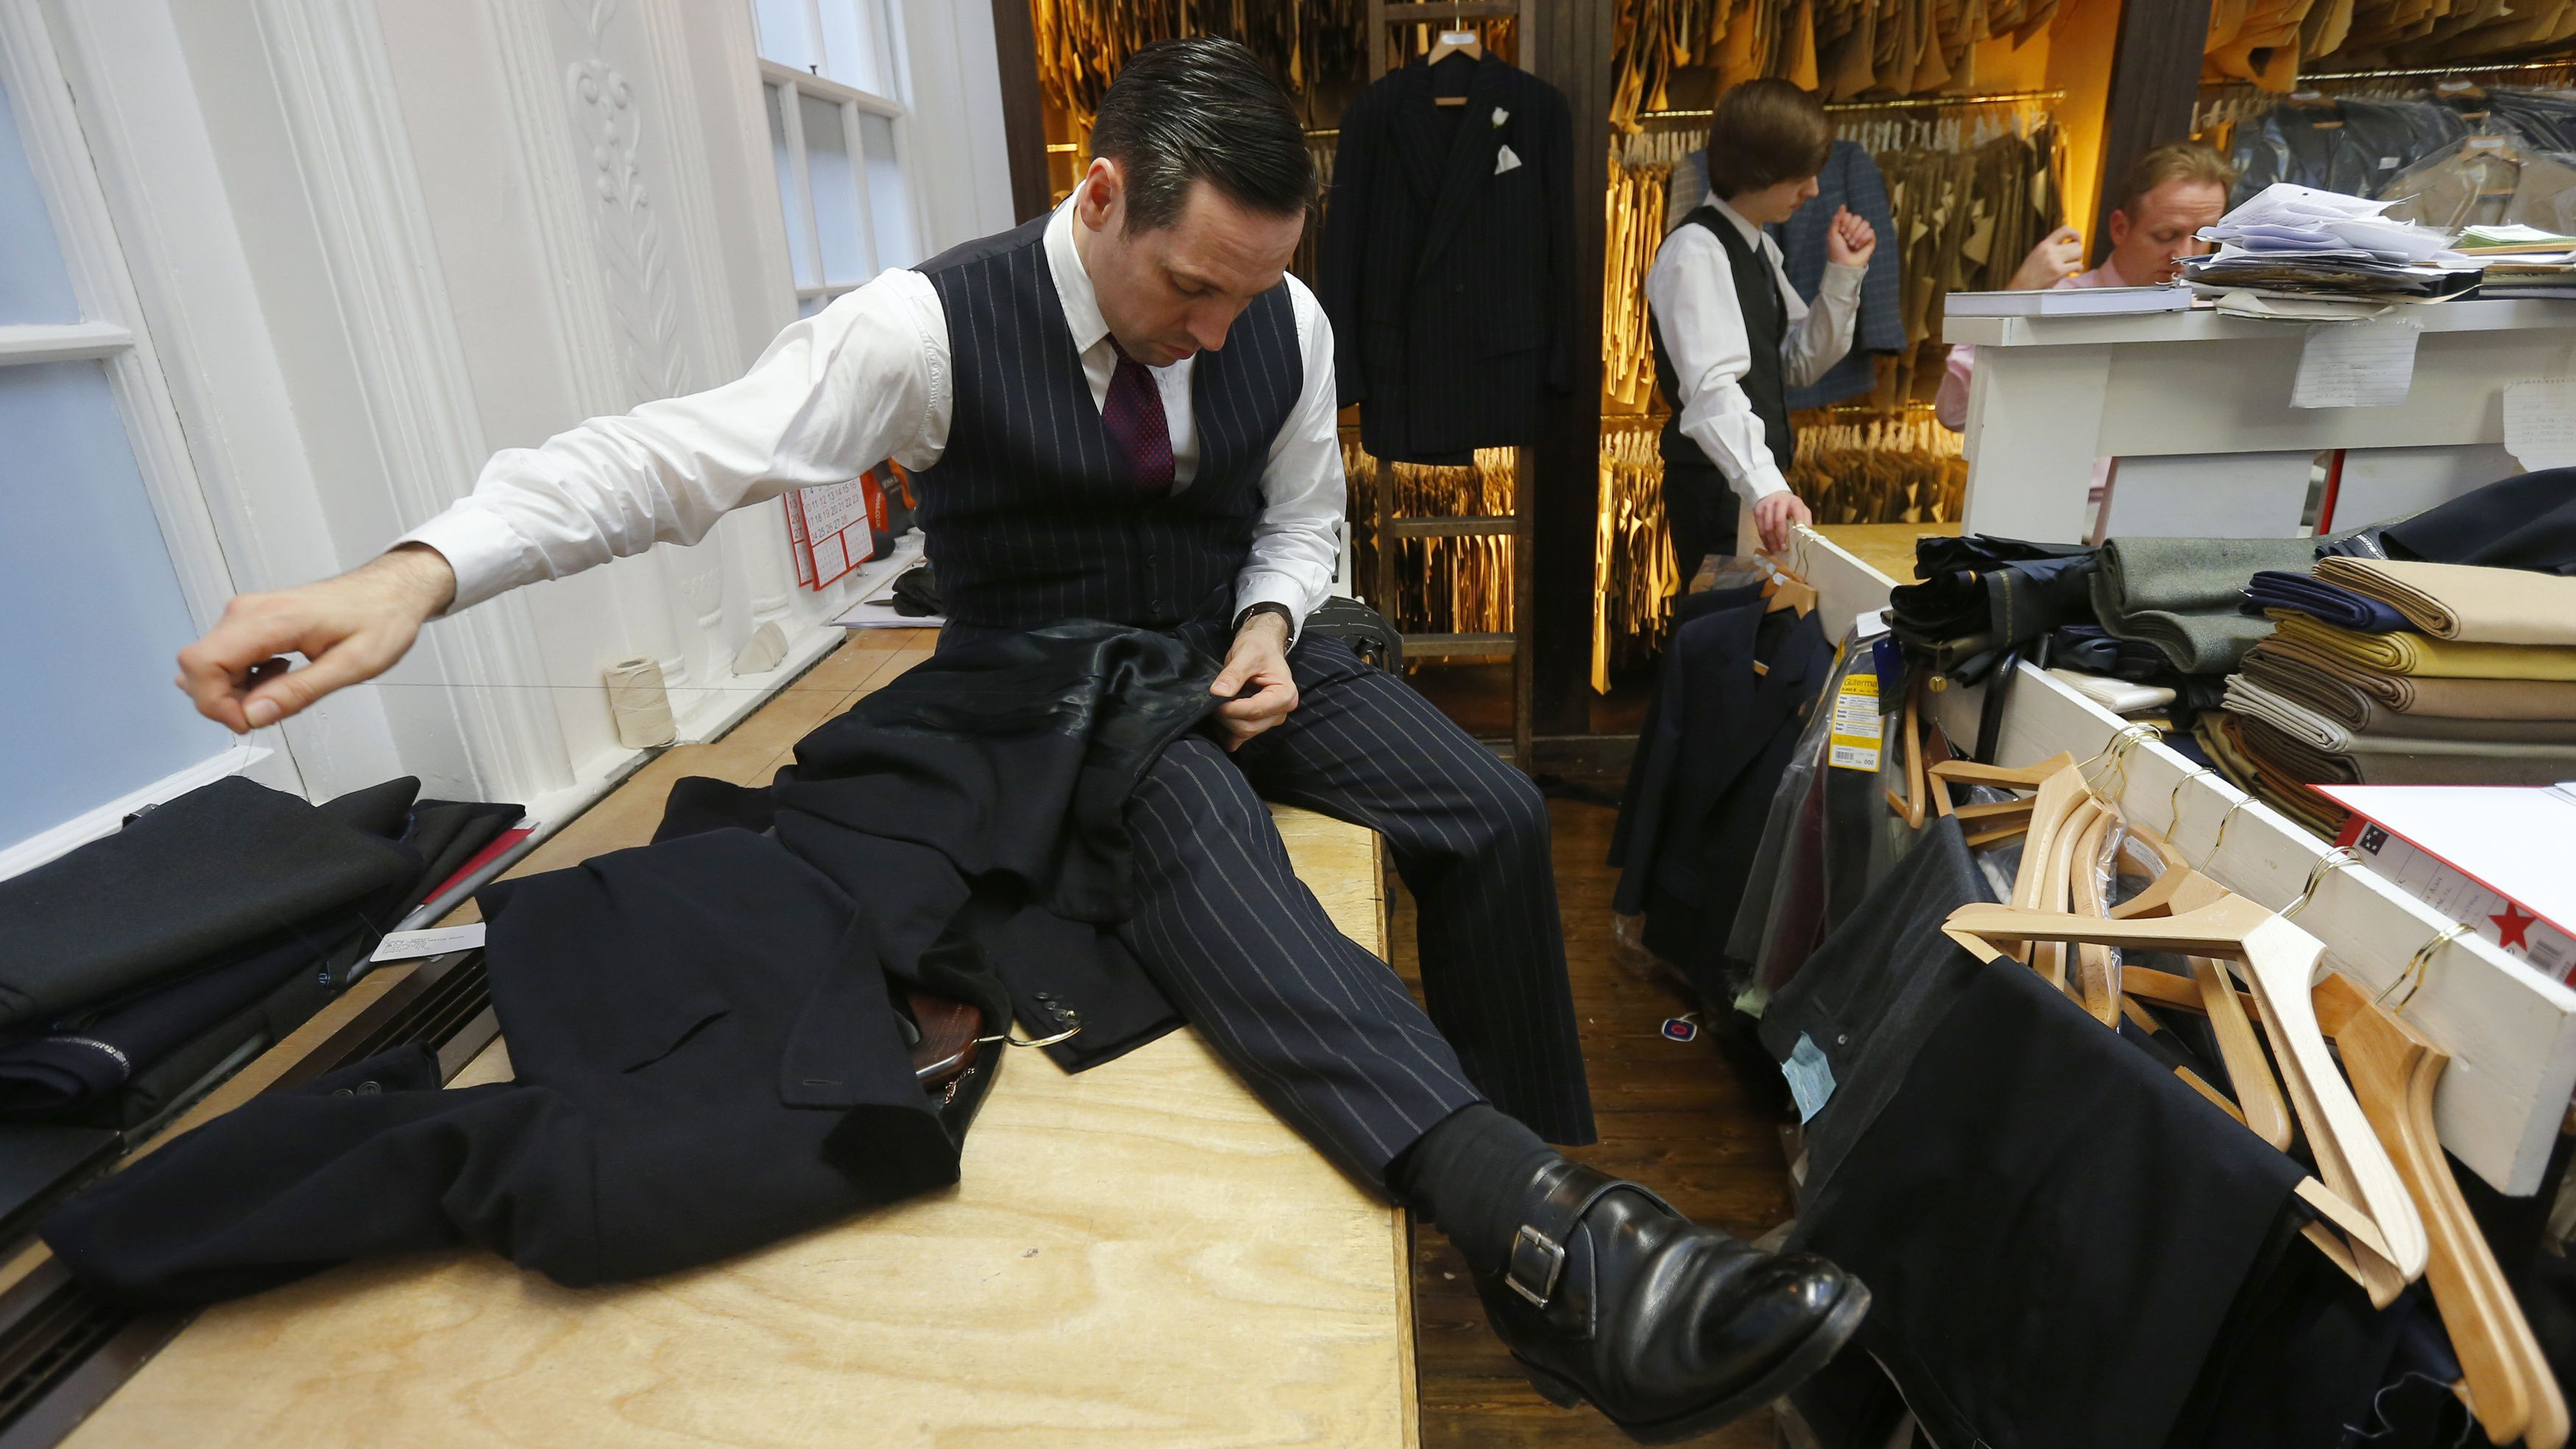 A tailor works on a bespoke men's suit.